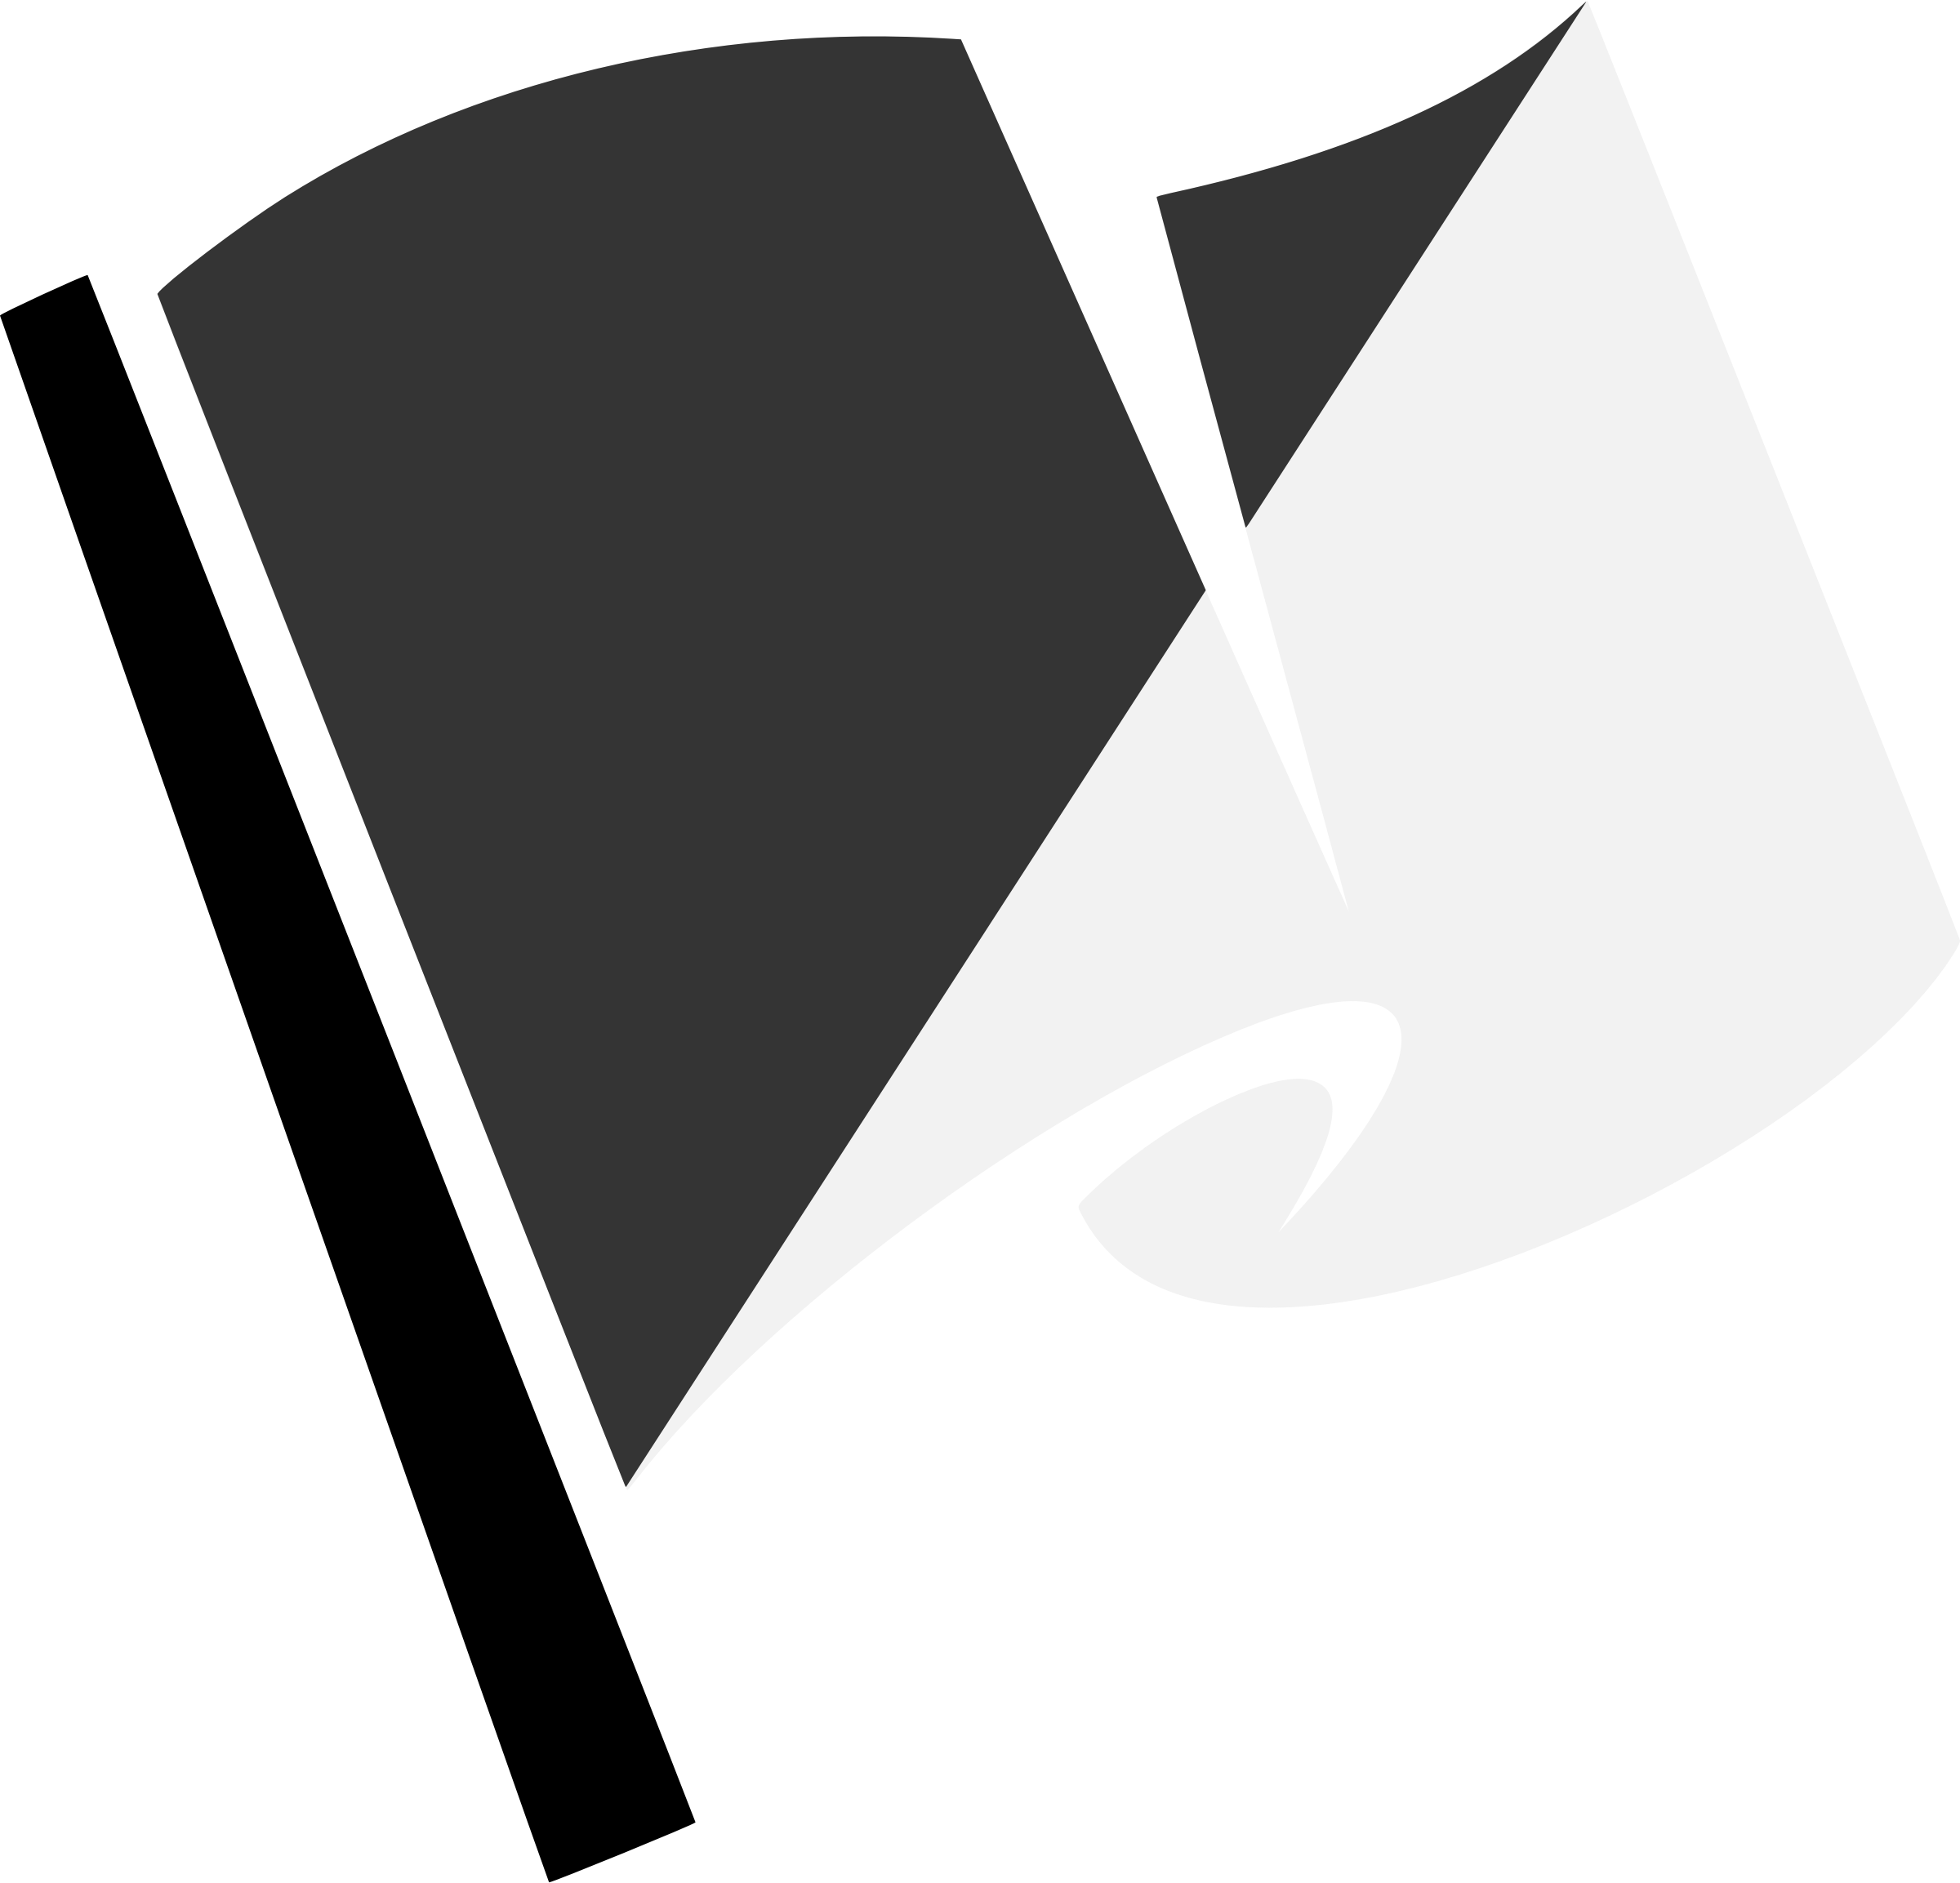 Hirnlichtspiele's black and white flag vectorized by Firkin